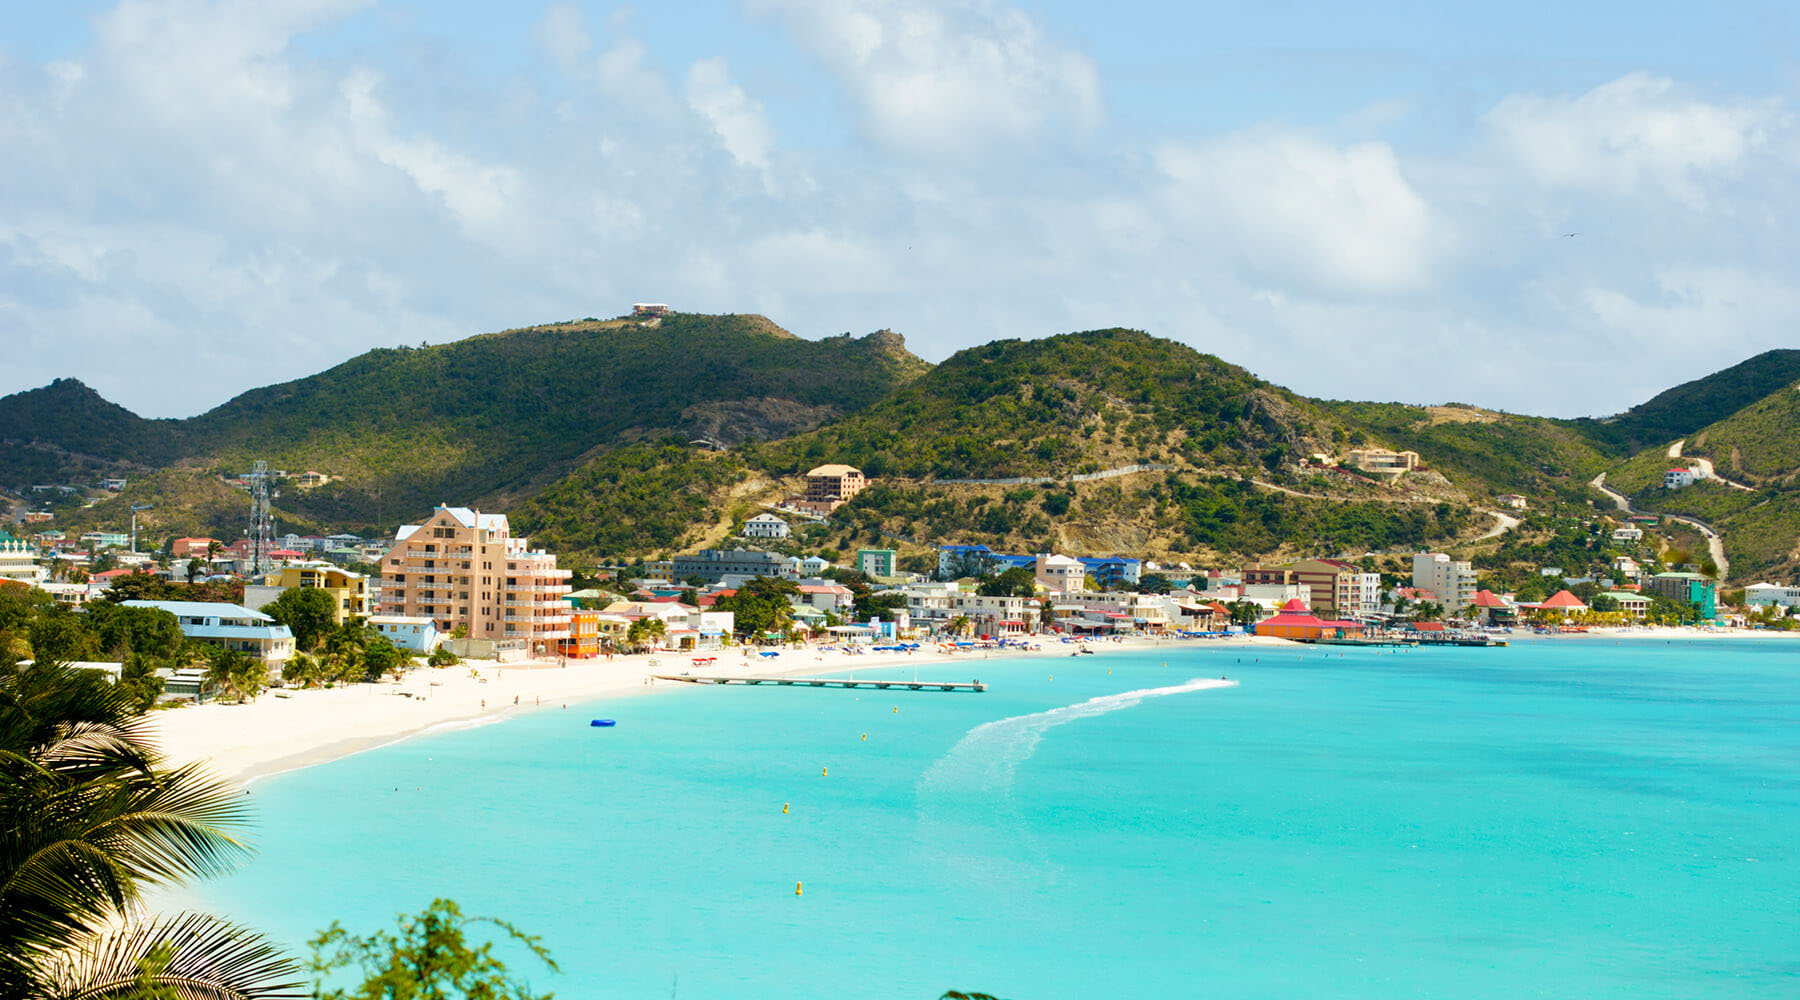 10-NIGHT CARIBBEAN HIGHLIGHTS VOYAGE